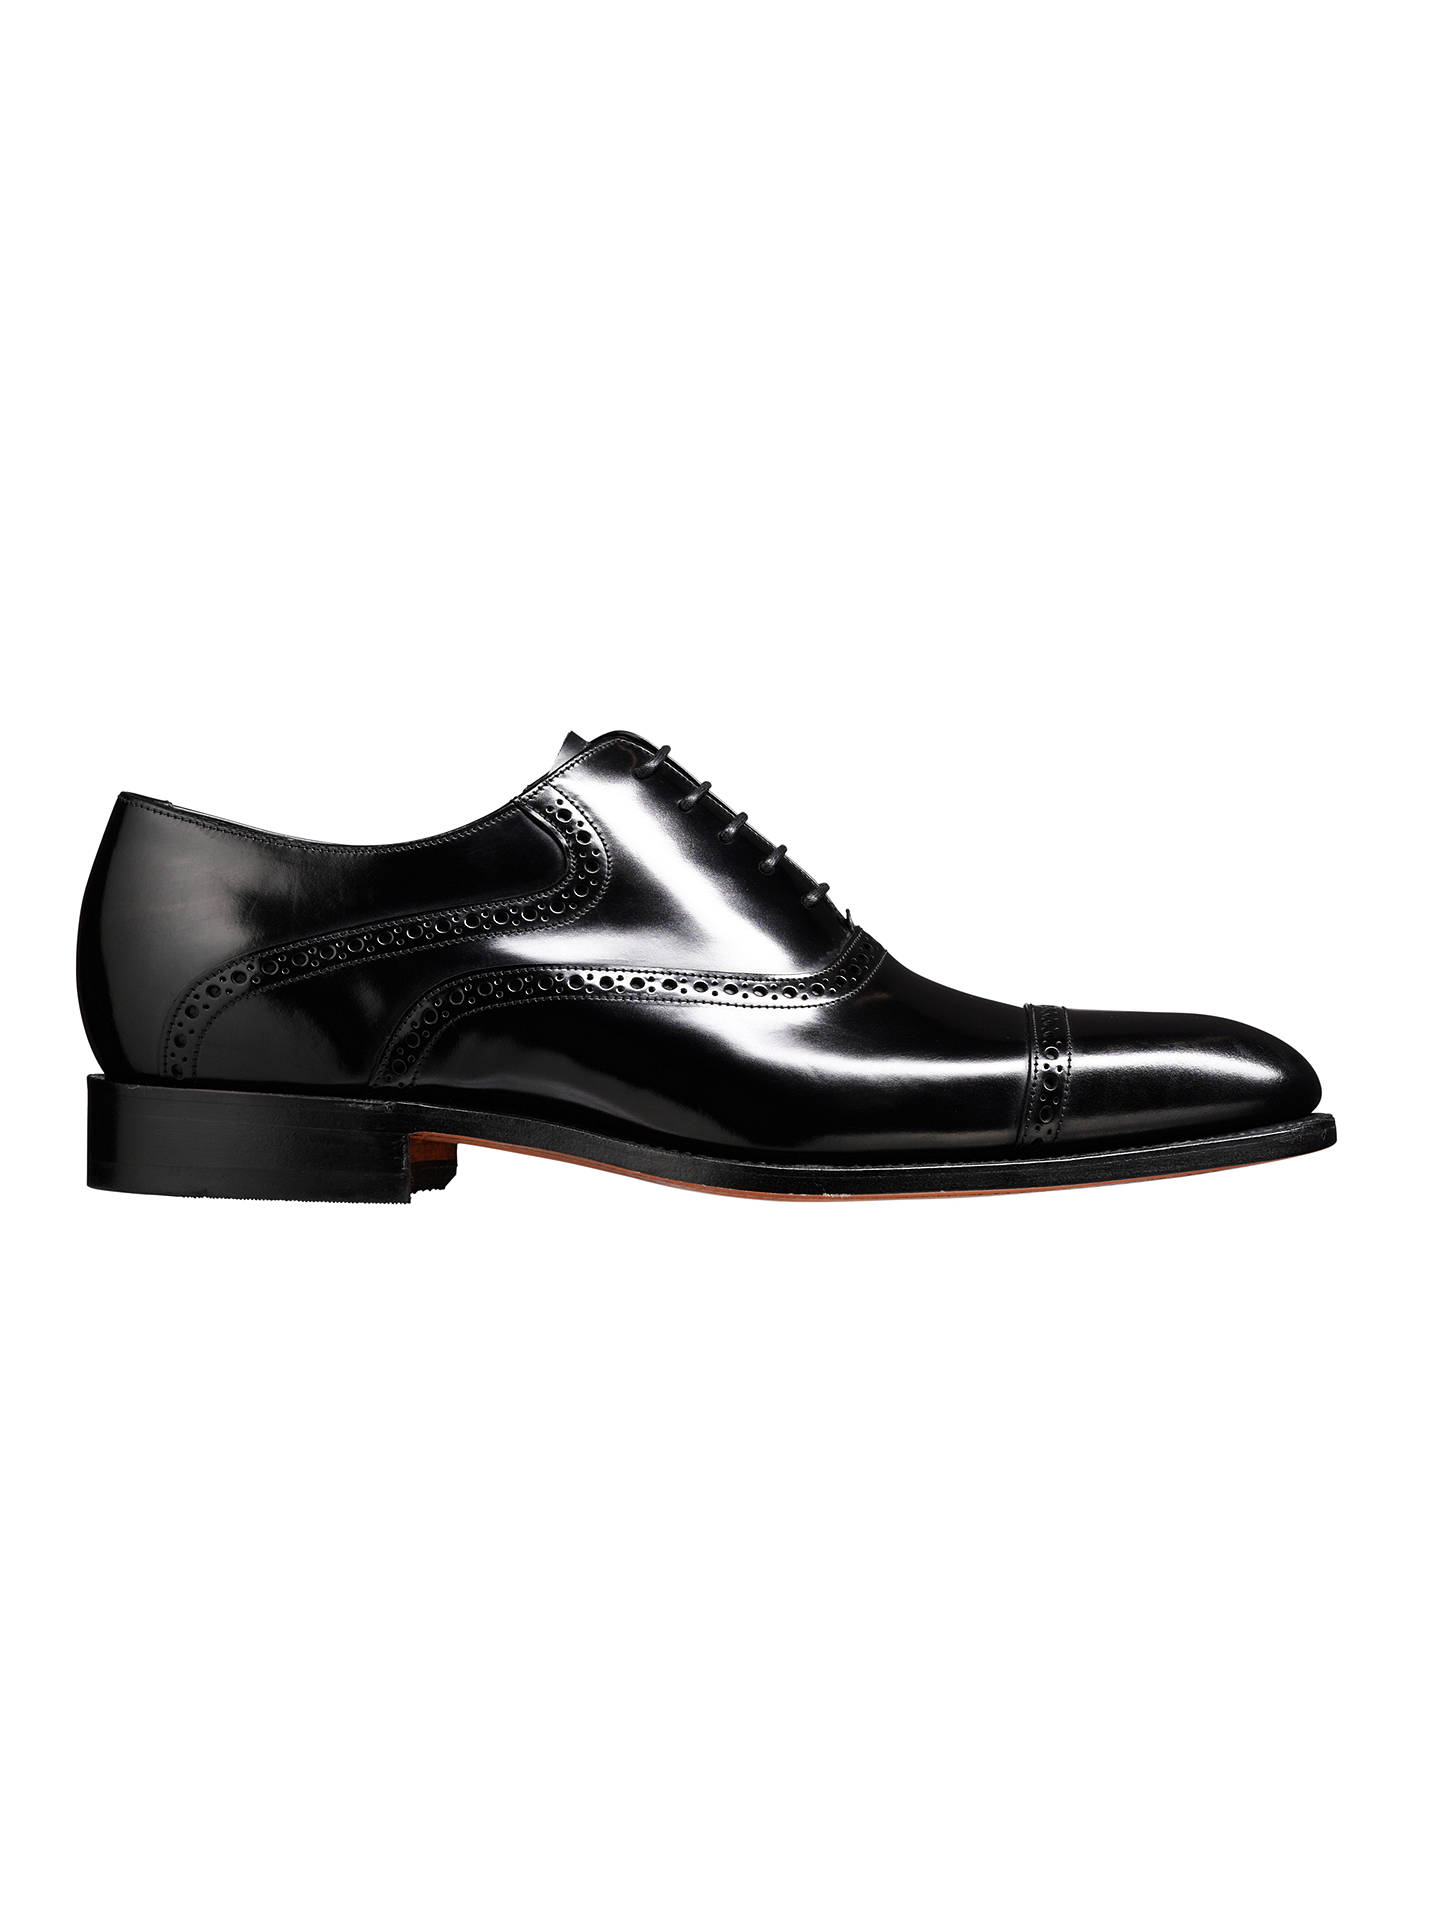 BuyBarker Wilton Goodyear Welt Leather Oxford Shoes, Black, 7 Online at johnlewis.com